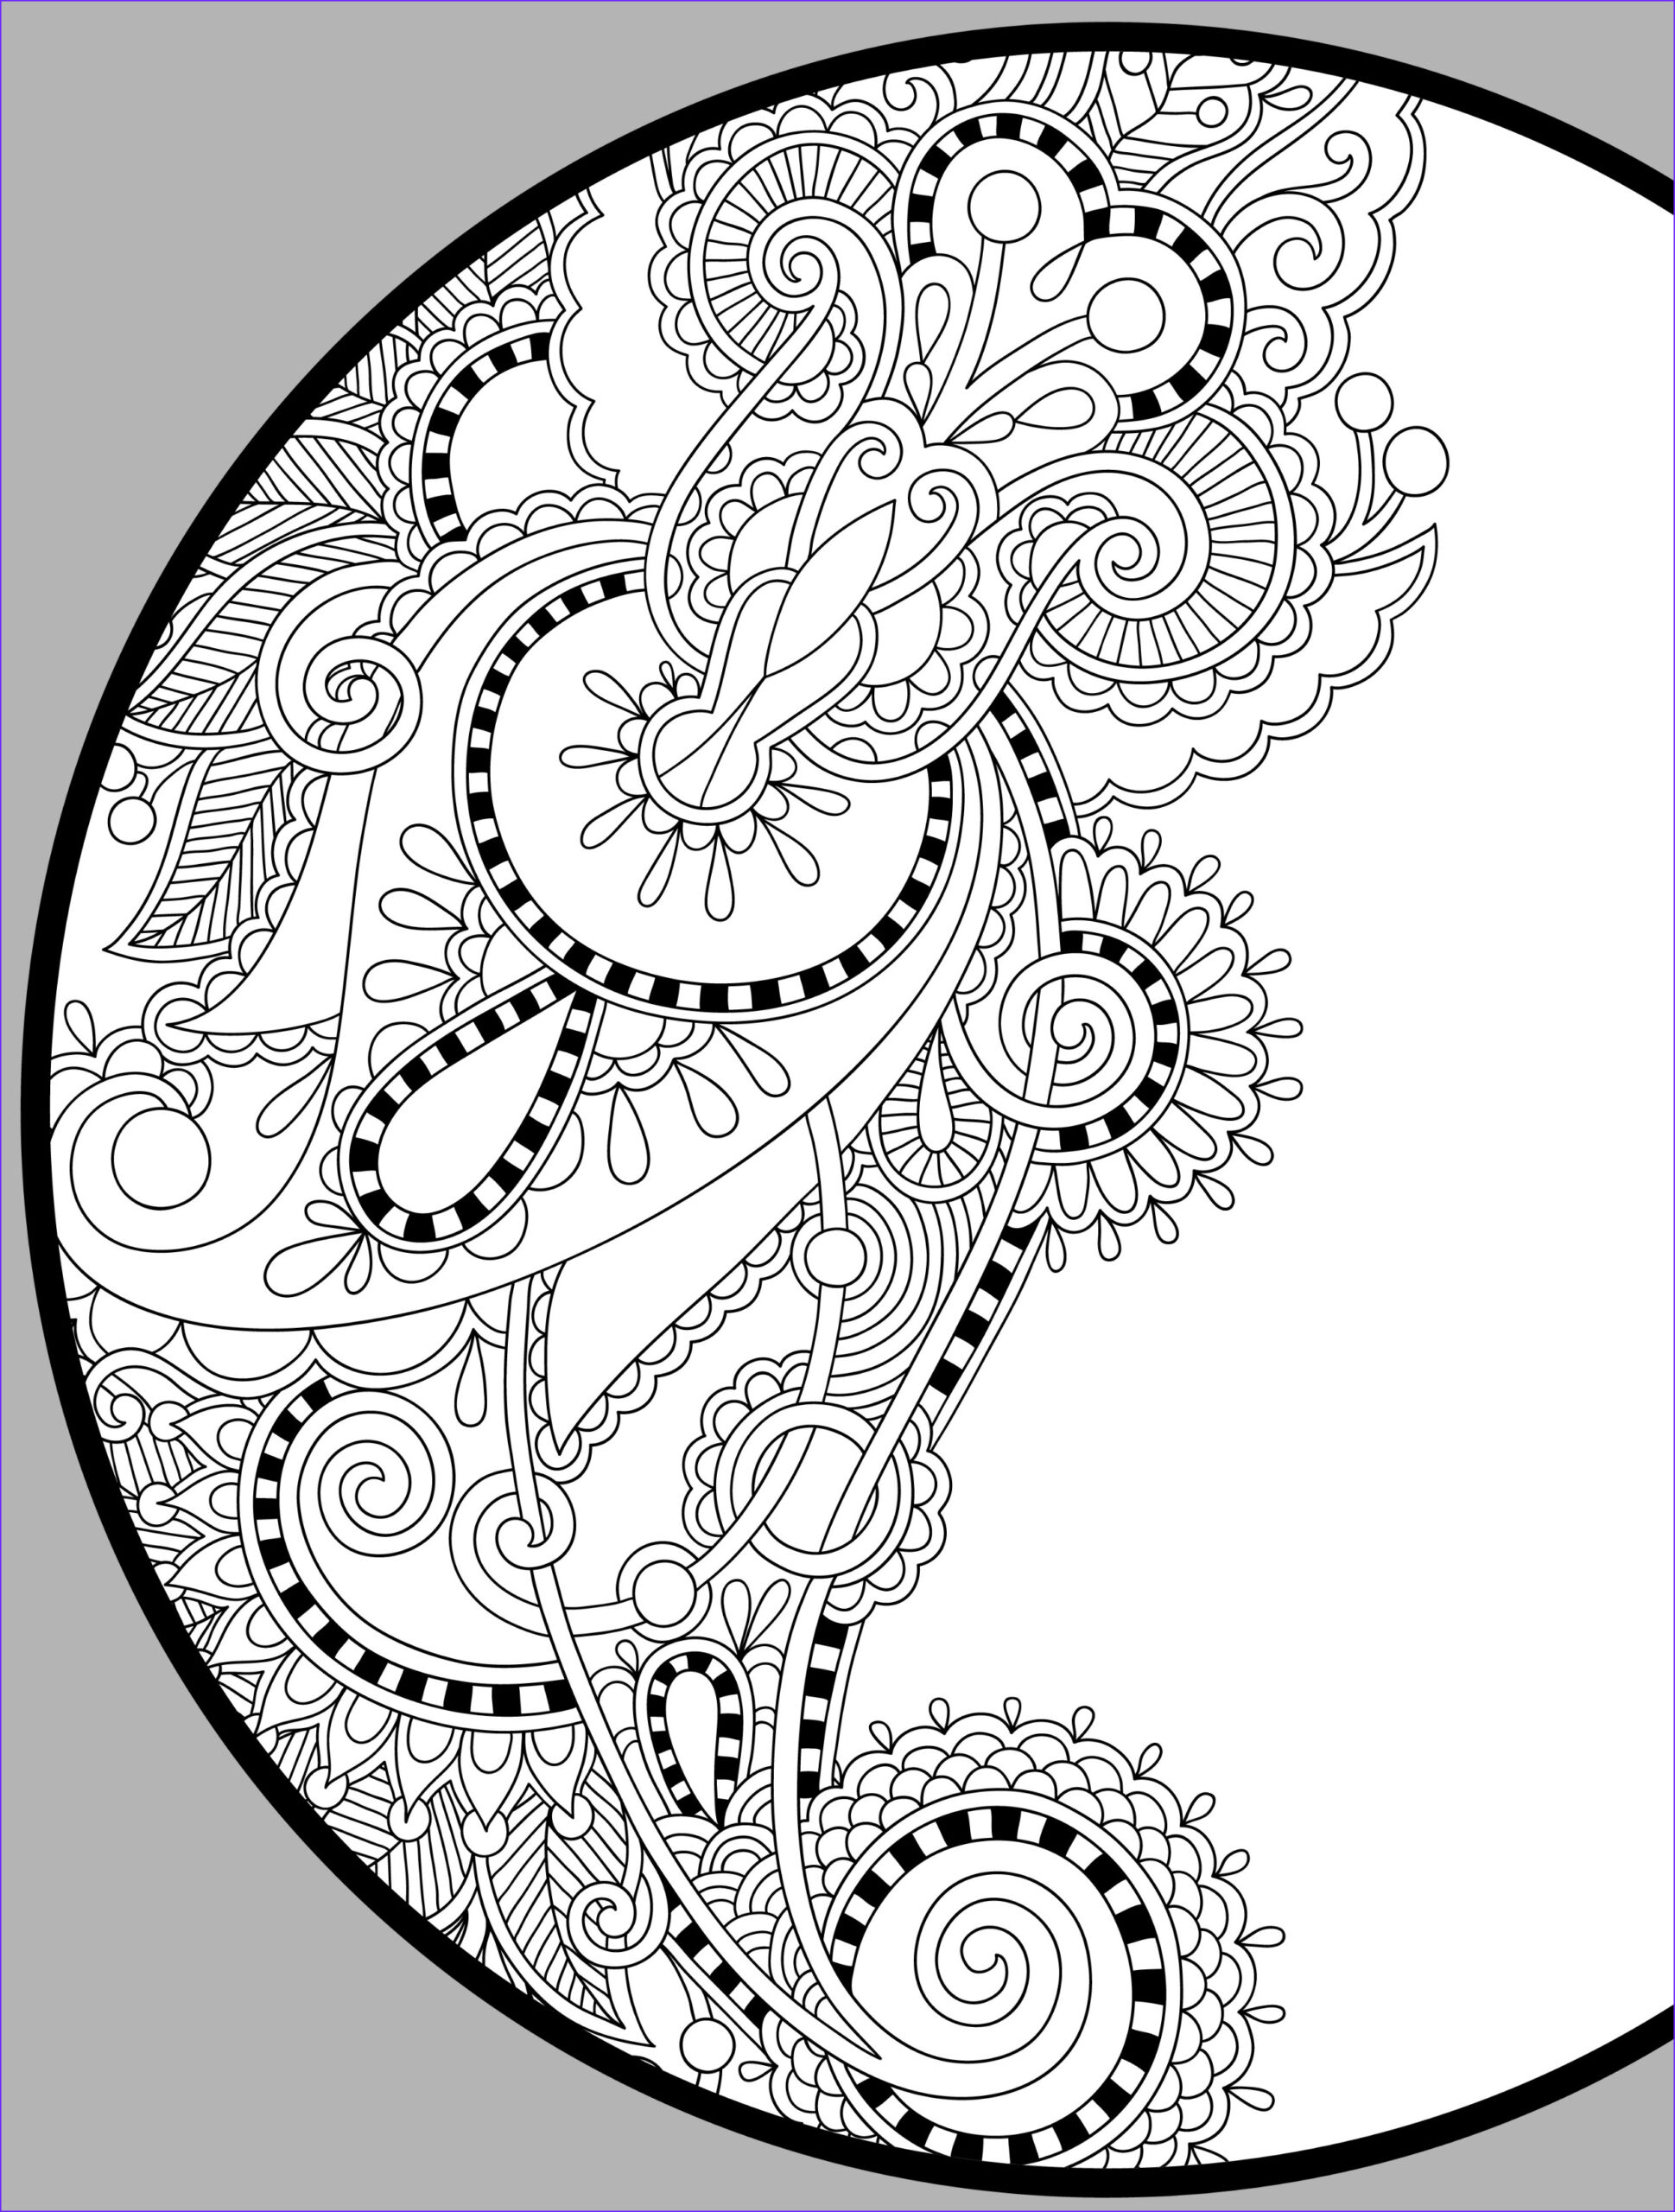 Coloring Book Page for Adults to Print Inspirational Photography Coloring Pages Adult Coloring Book Pages Free Printable